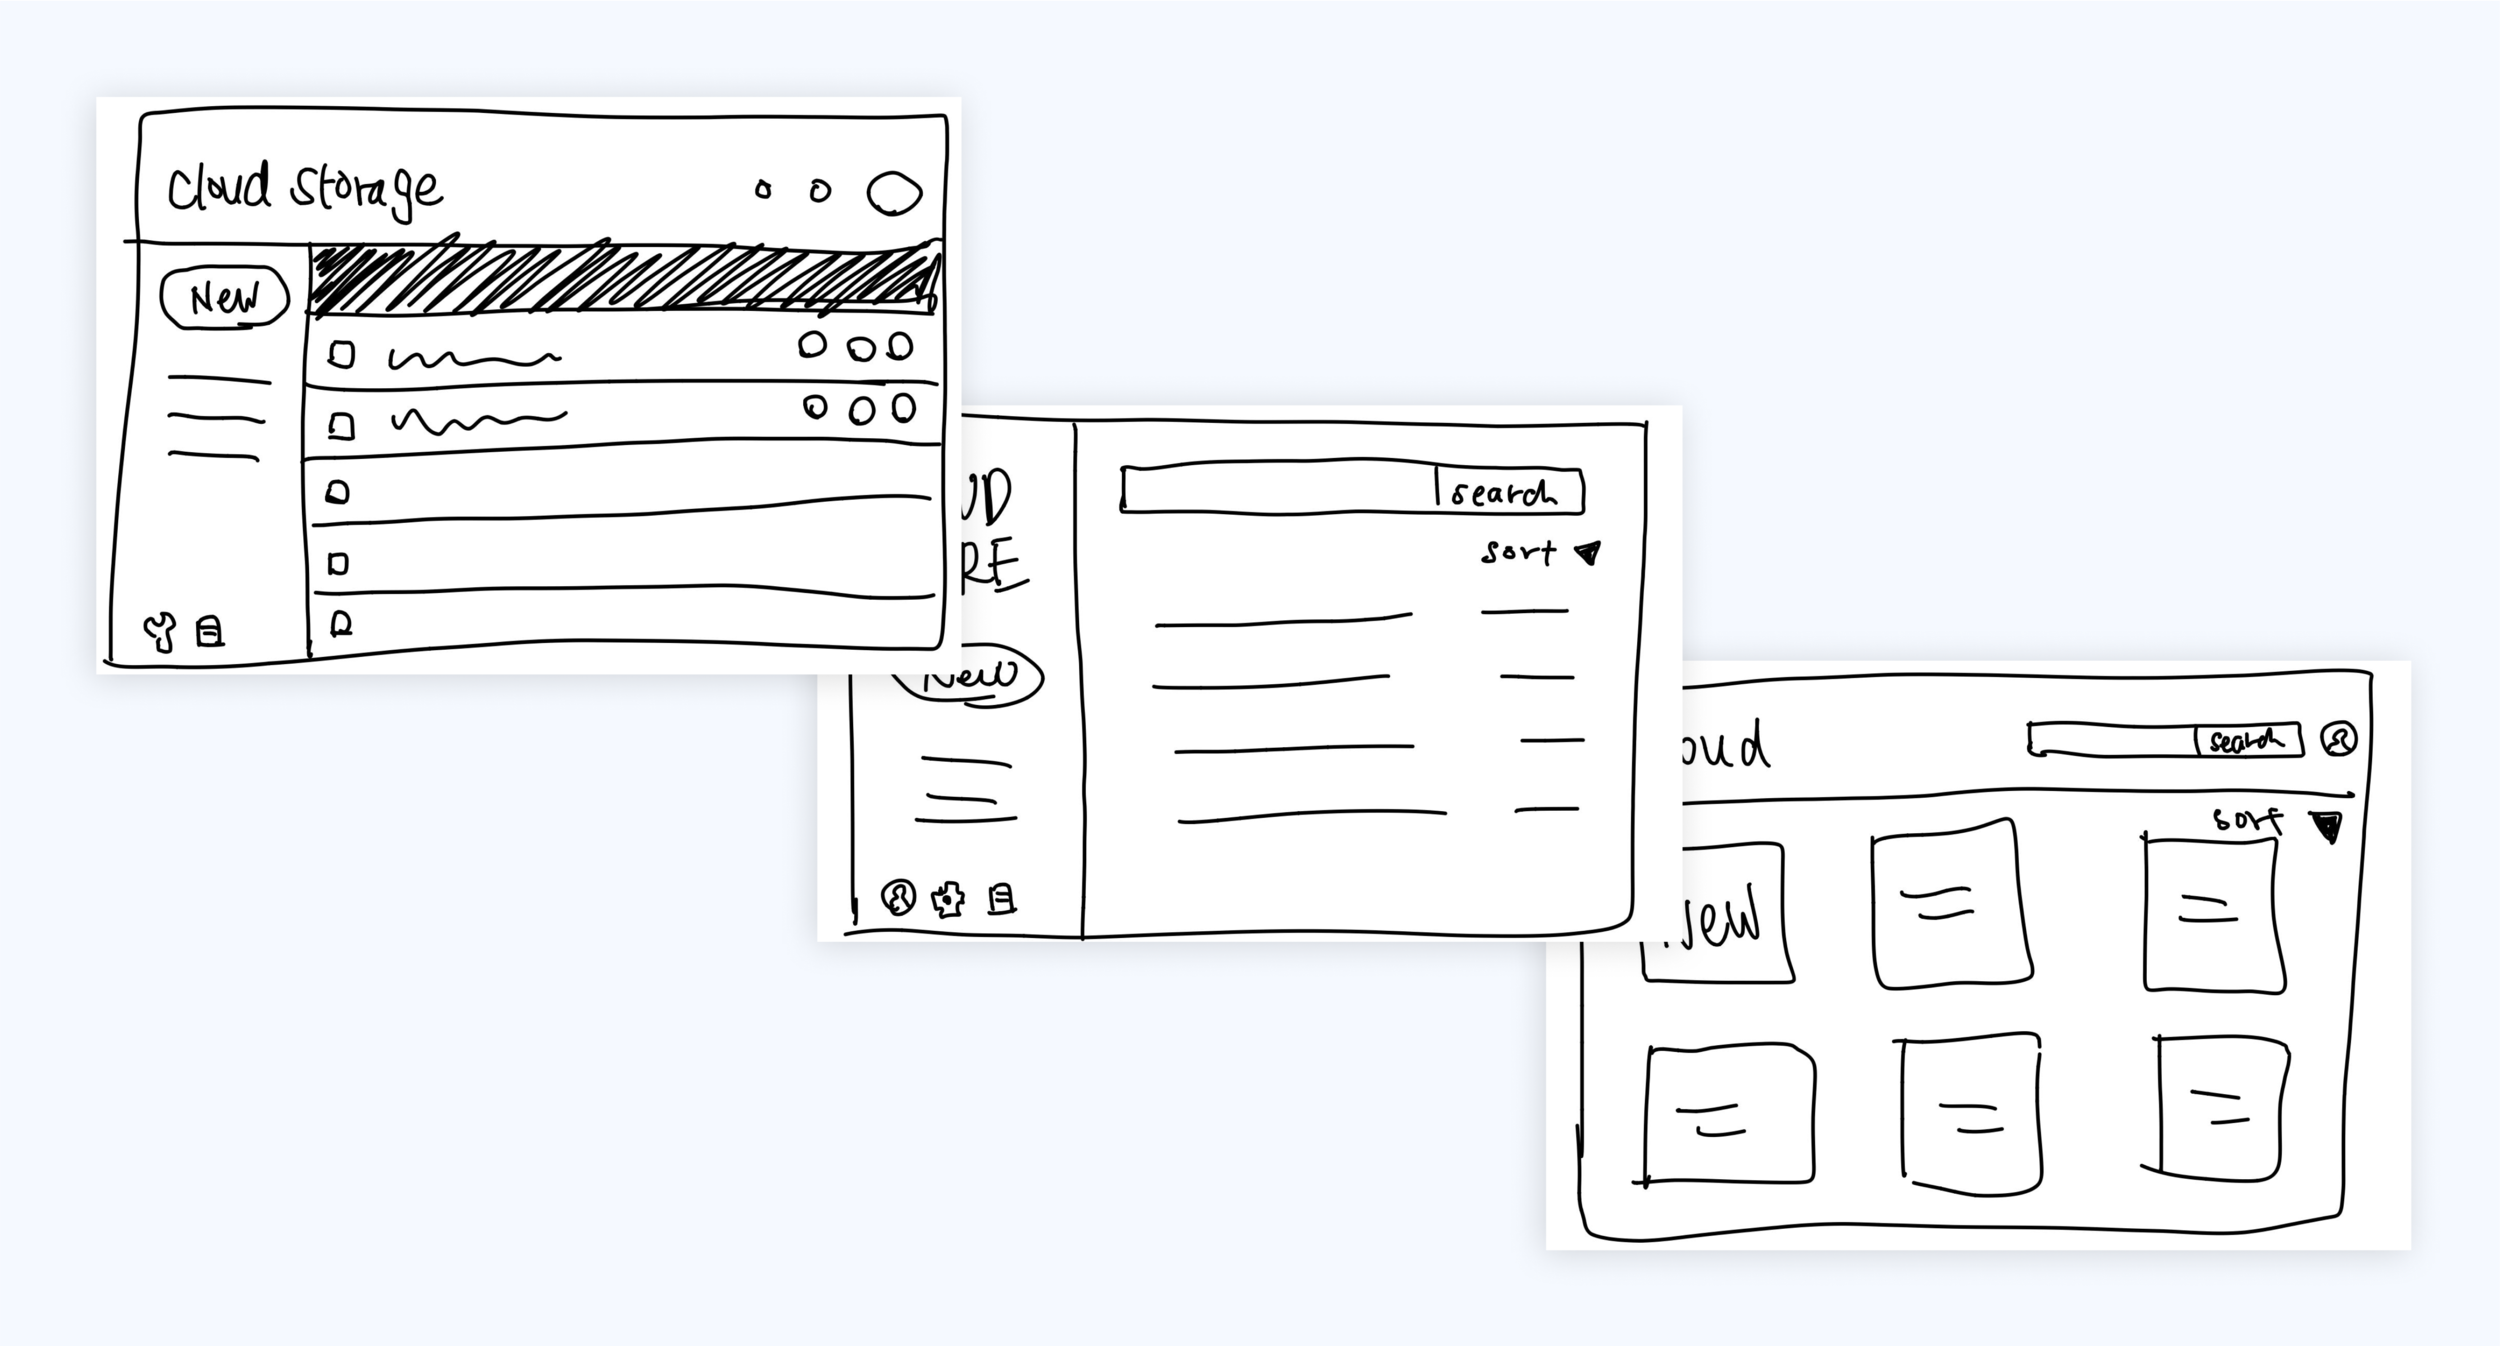 Sketching out different variations of the dashboard...